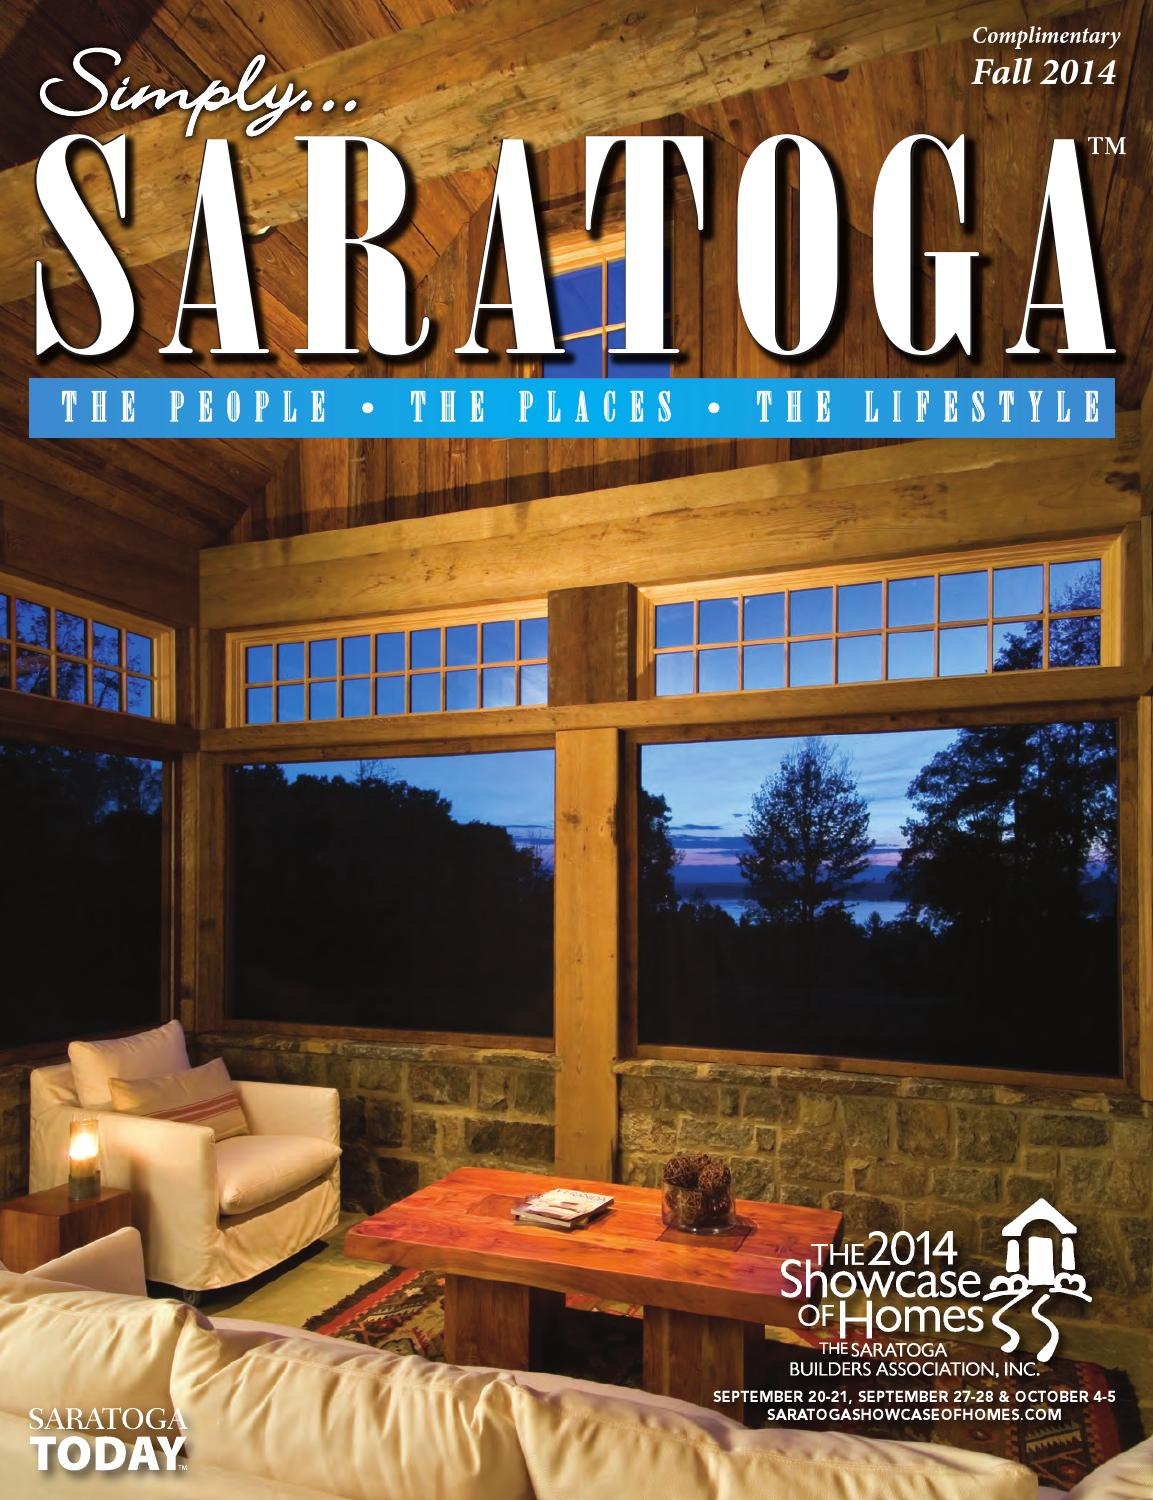 Simply Saratoga Magazine and Saratoga Showcase of Homes | Witt ... on fulton houses, wood houses, palo alto houses, united states houses, pretty beach houses, musical houses, casper houses, cypress houses, turlock houses, los angeles houses, monterey houses, riverside houses, albany houses, gone with the wind houses, kountze houses, walnut houses, whittier houses, detroit houses, wyoming houses, san diego houses,